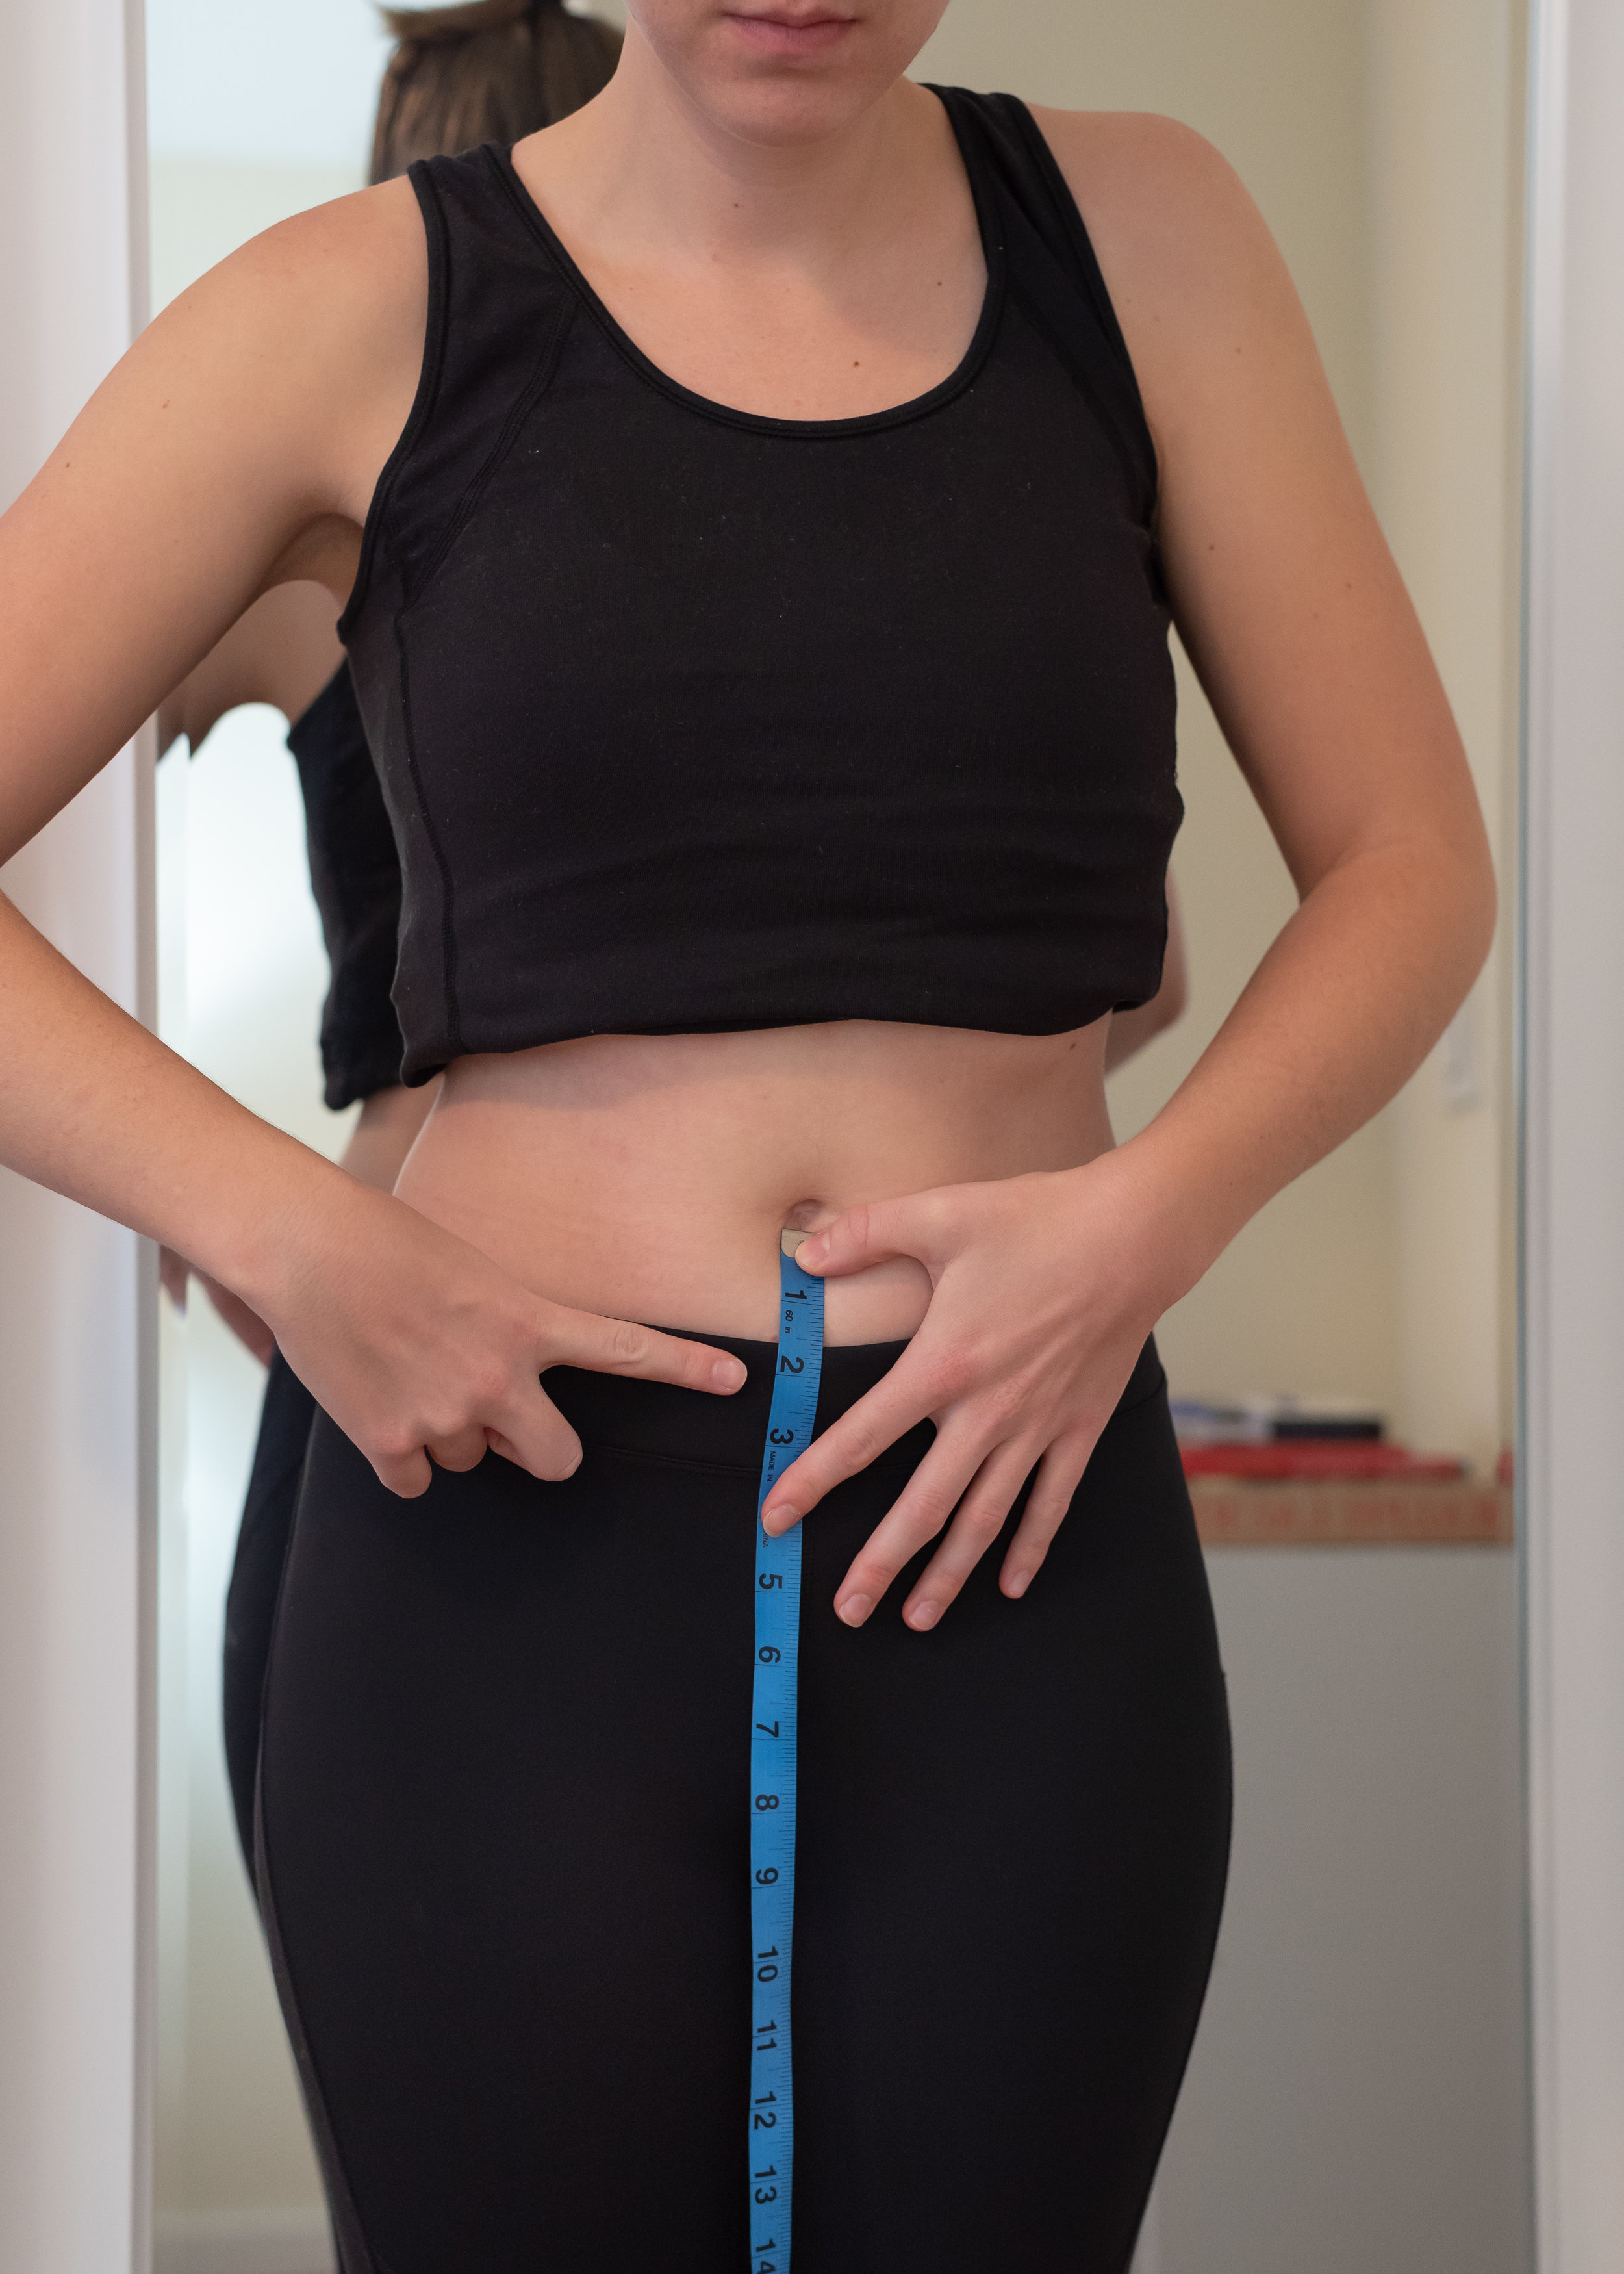 How to take your stomach measurement or wearing waist measurement for clothing